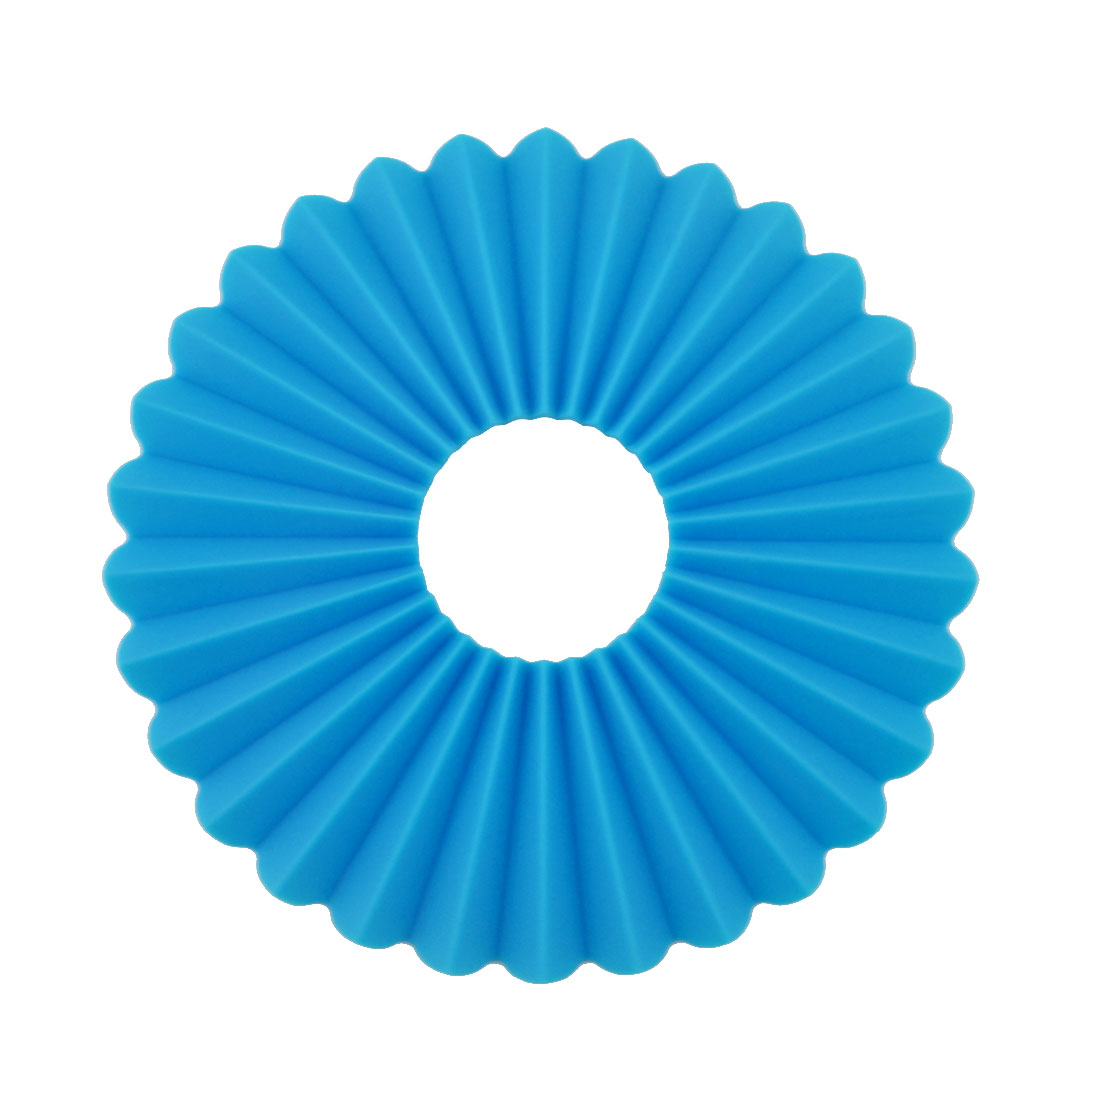 Silicone Plicated Multifunction Table Heat Resistant Mat Coaster Cushion Placemat Pad Blue